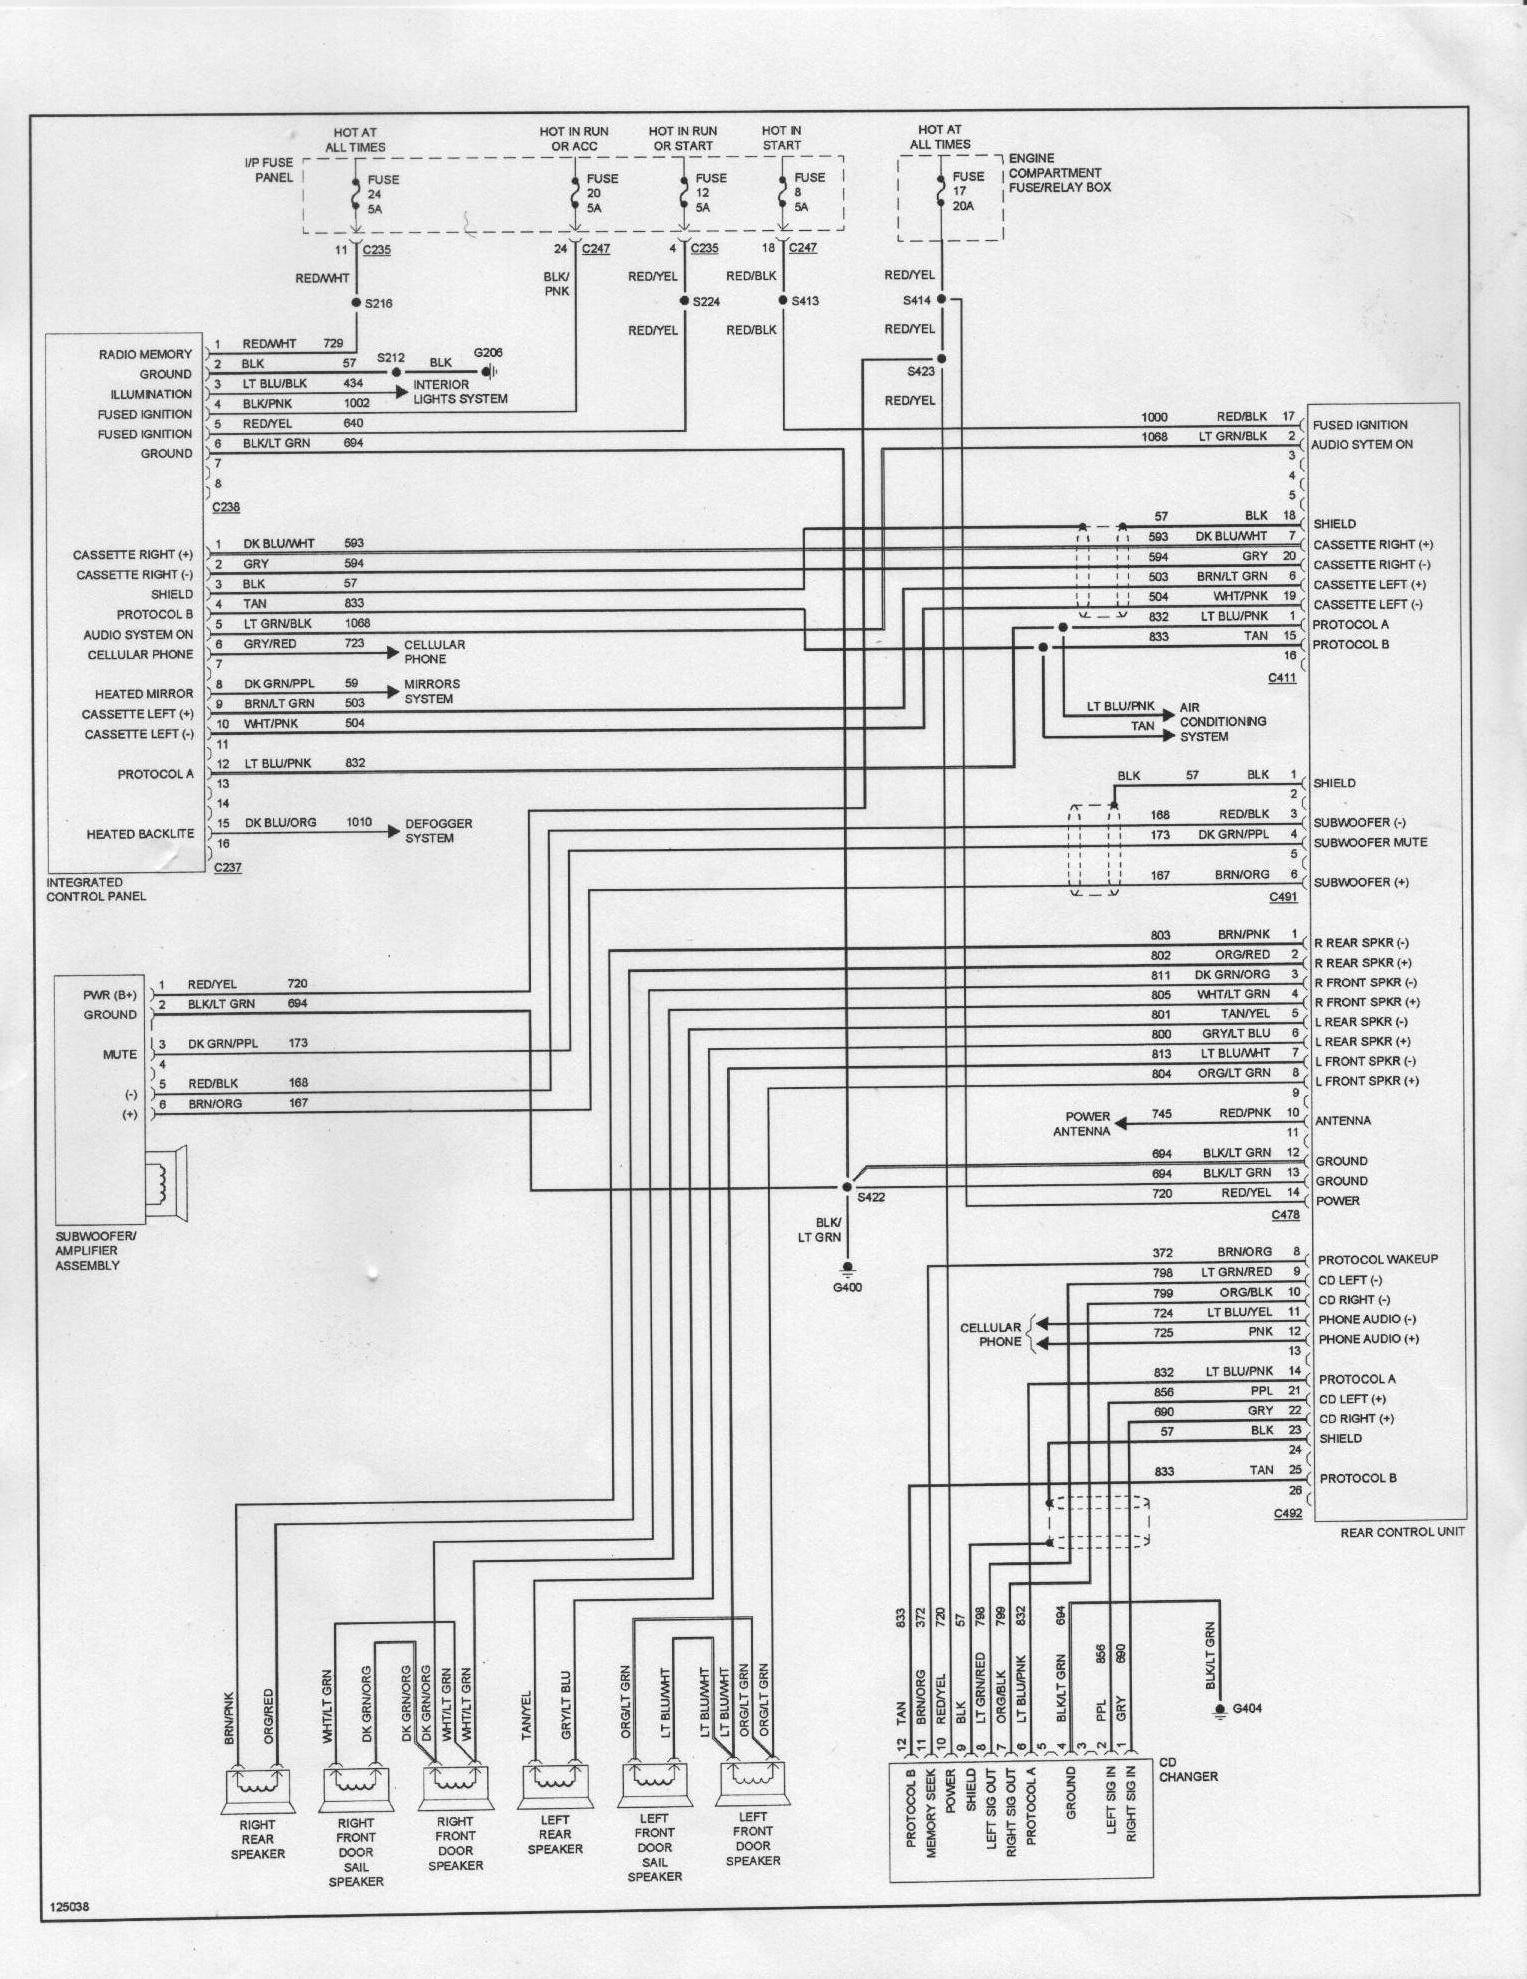 46509d1178551791 scosche orange wire _______ diagram96 scosche gm 3000 wiring diagram foscam wiring diagram \u2022 free wiring scosche gm2000 wiring diagram at virtualis.co